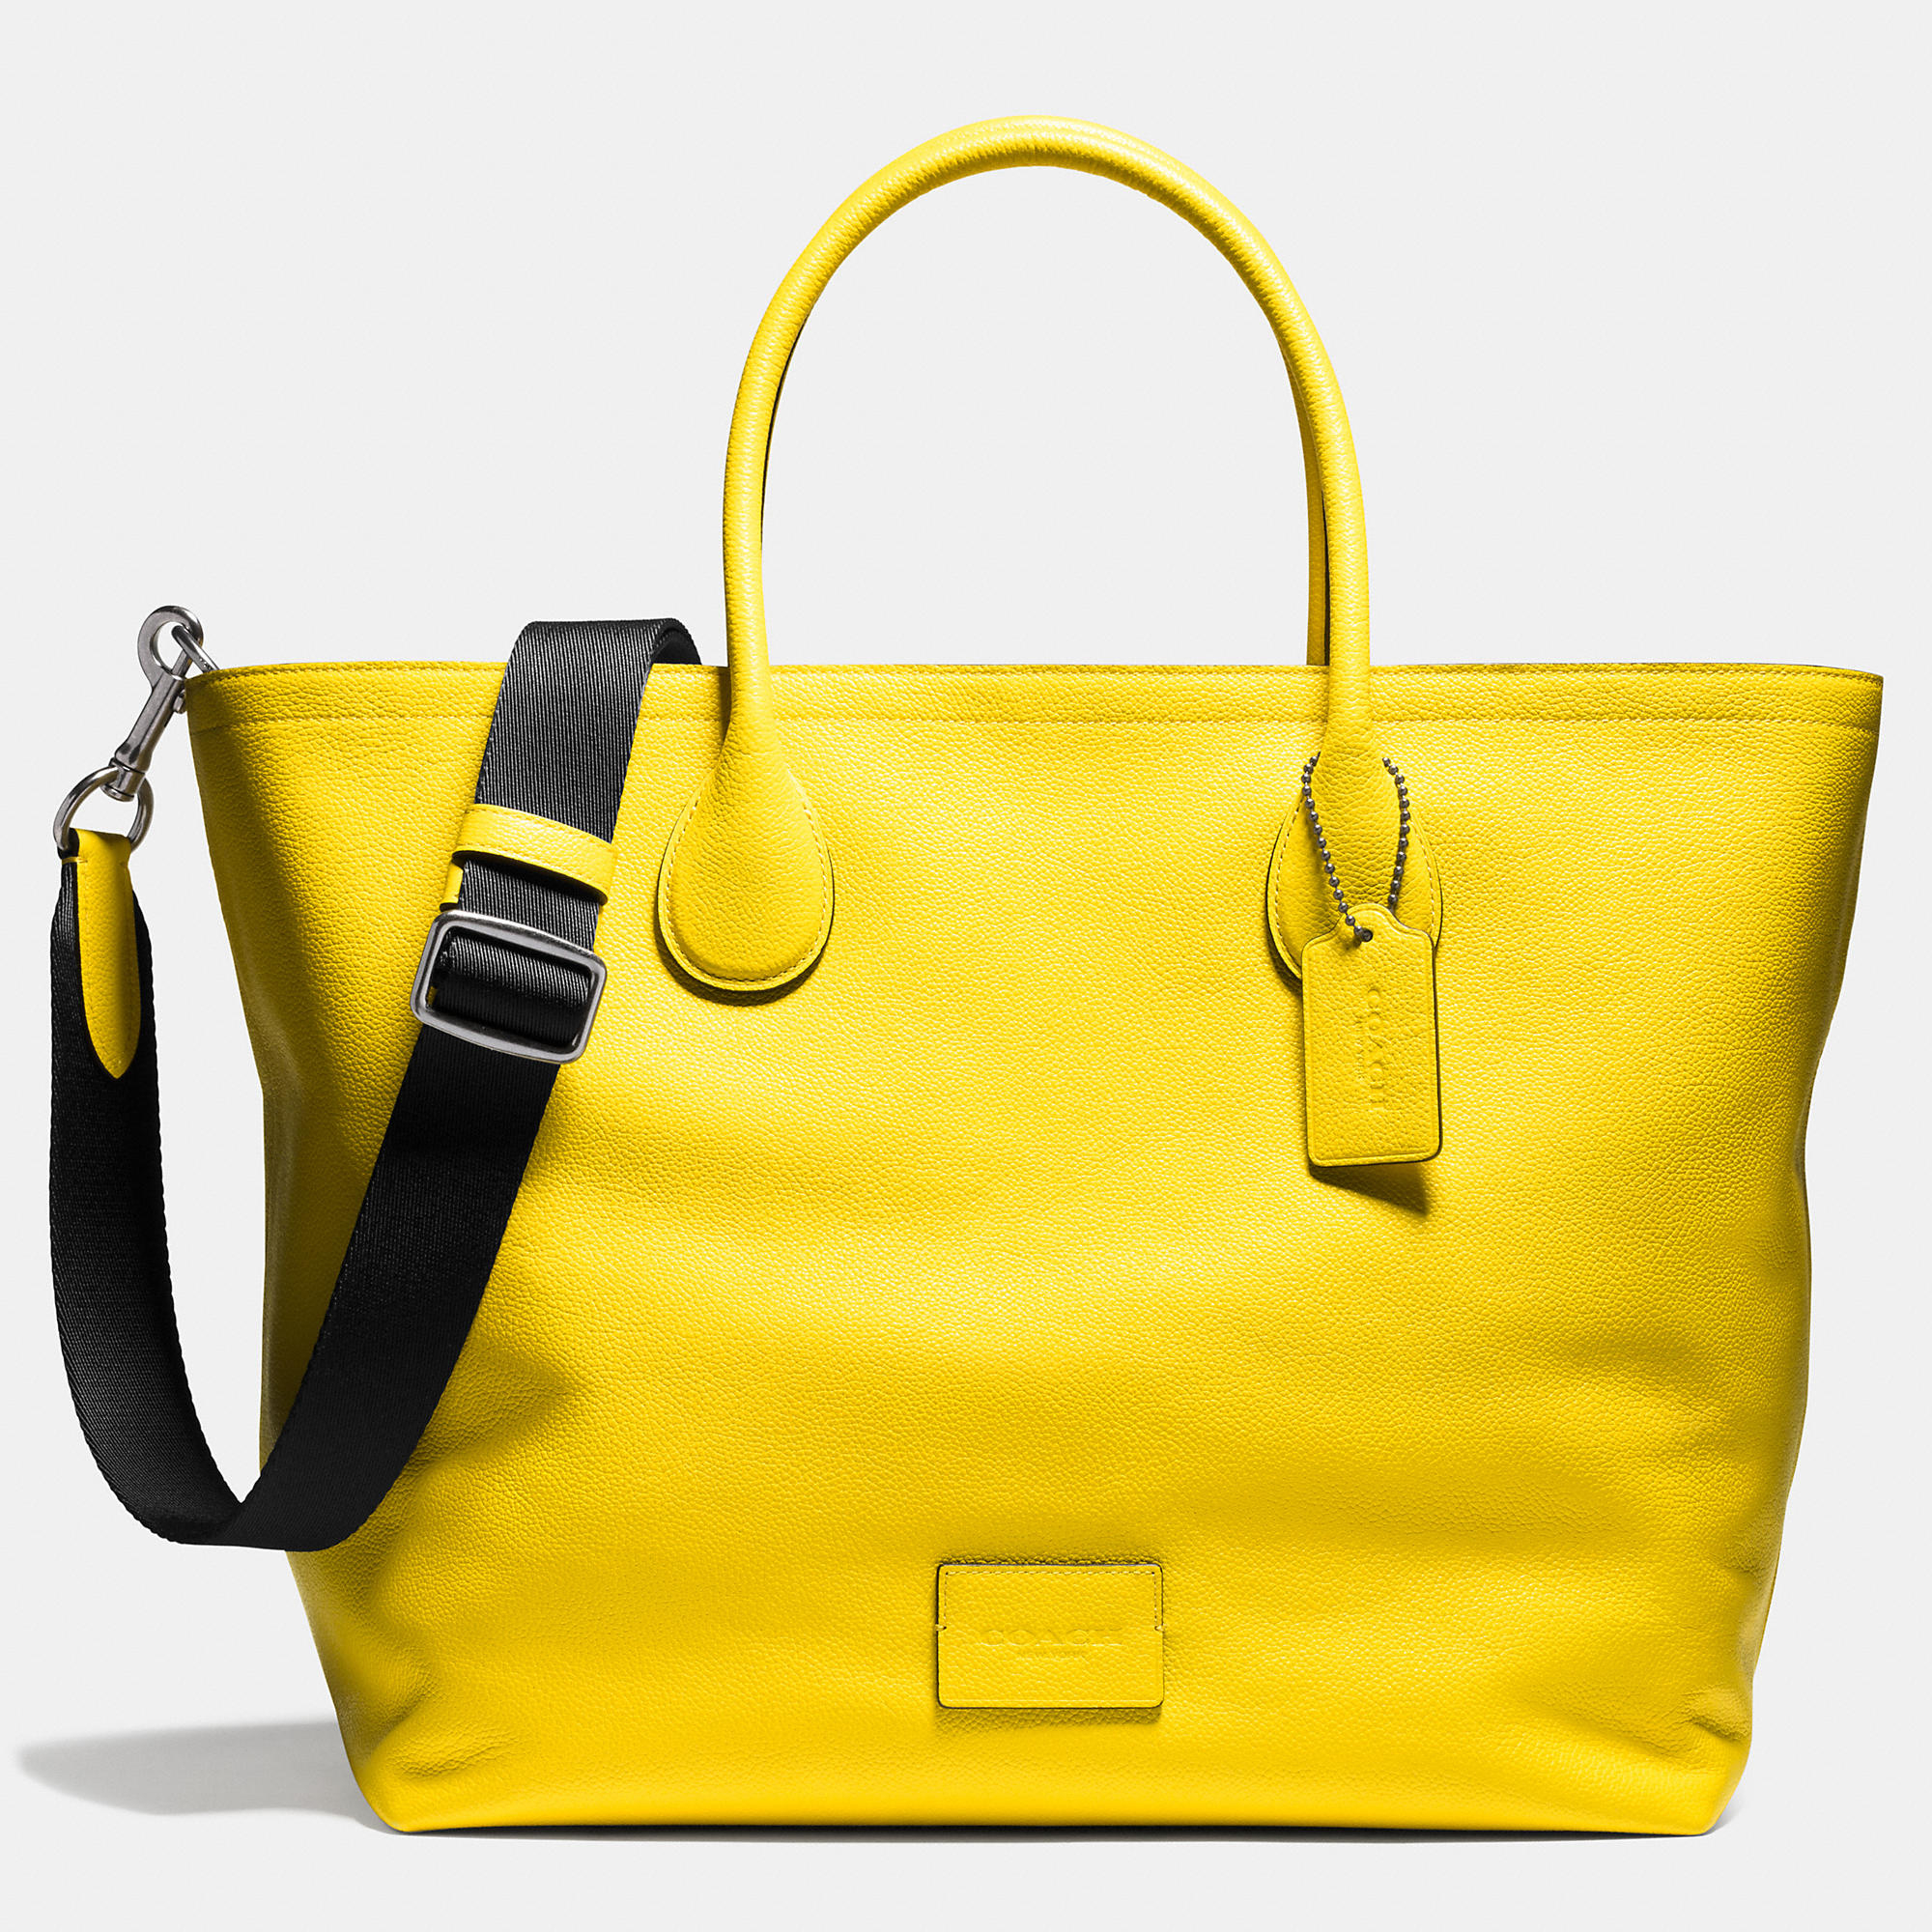 6d77ebe8c70e COACH Mercer Tote 40 In Refined Pebble Leather in Yellow for Men - Lyst